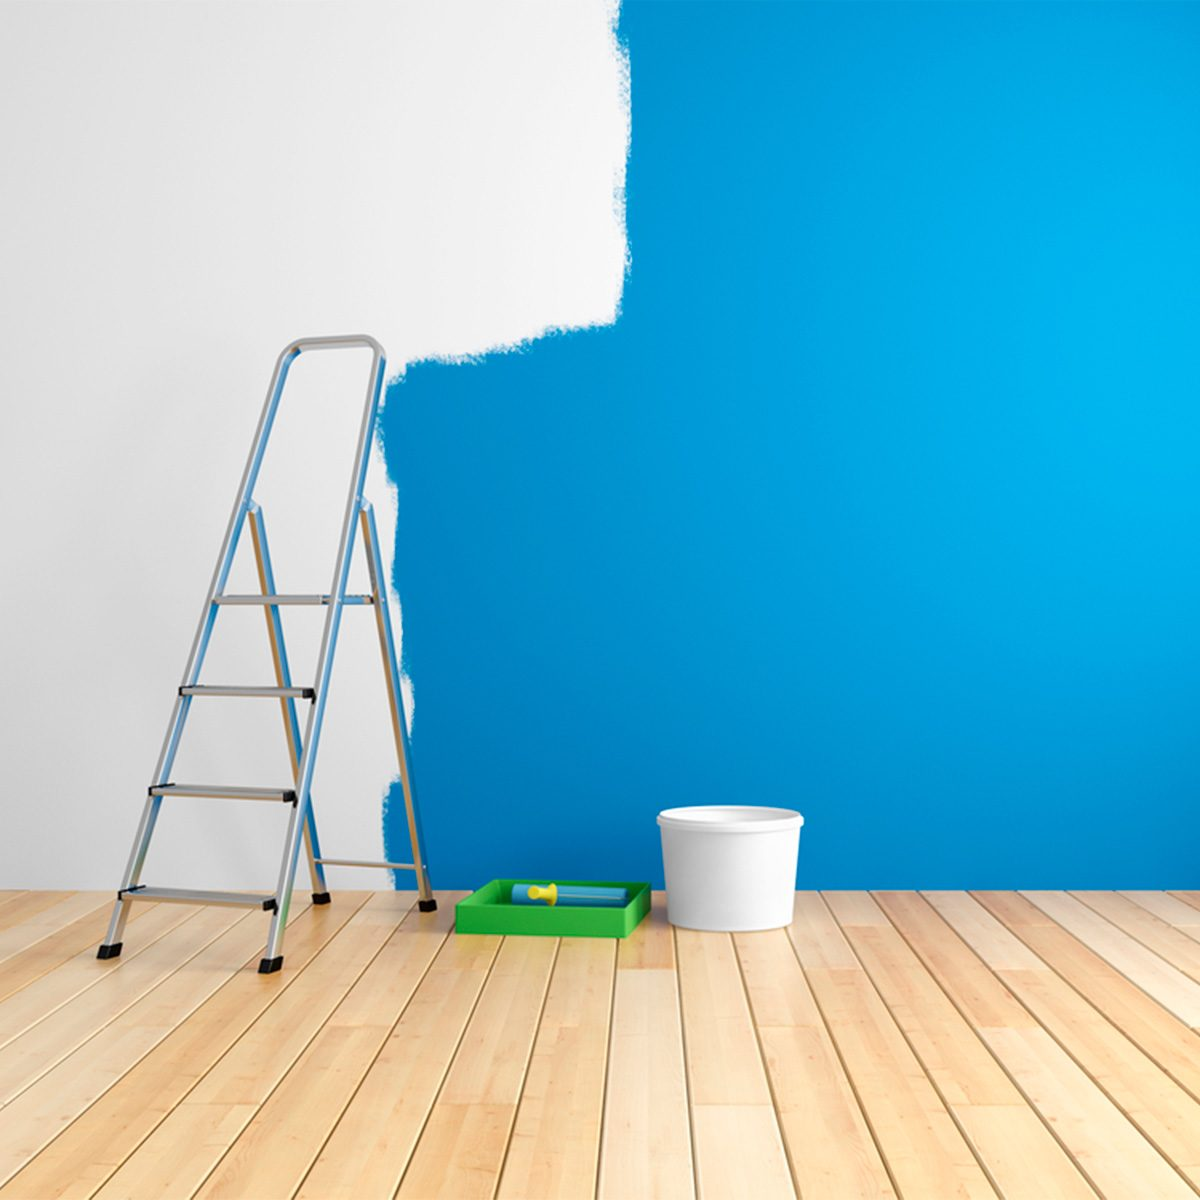 How to Paint a Room Fast: How to Paint a Room Like a Pro